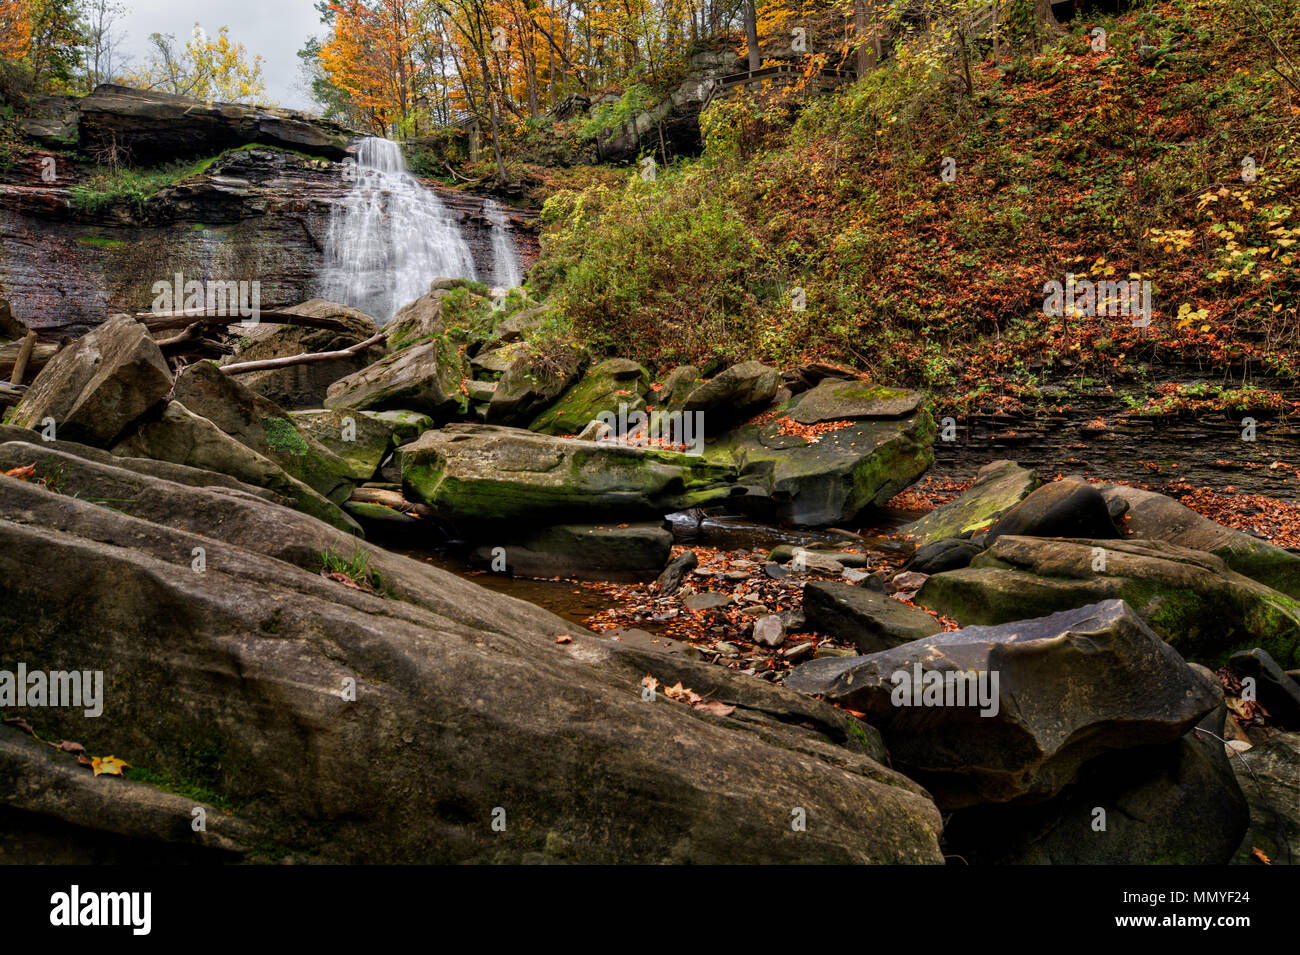 The majestic Brandywine Falls in Cuyahoga Valley National Park Ohio.  A beautiful 65-foot drop. Seen here from the stream bed in autumn. - Stock Image